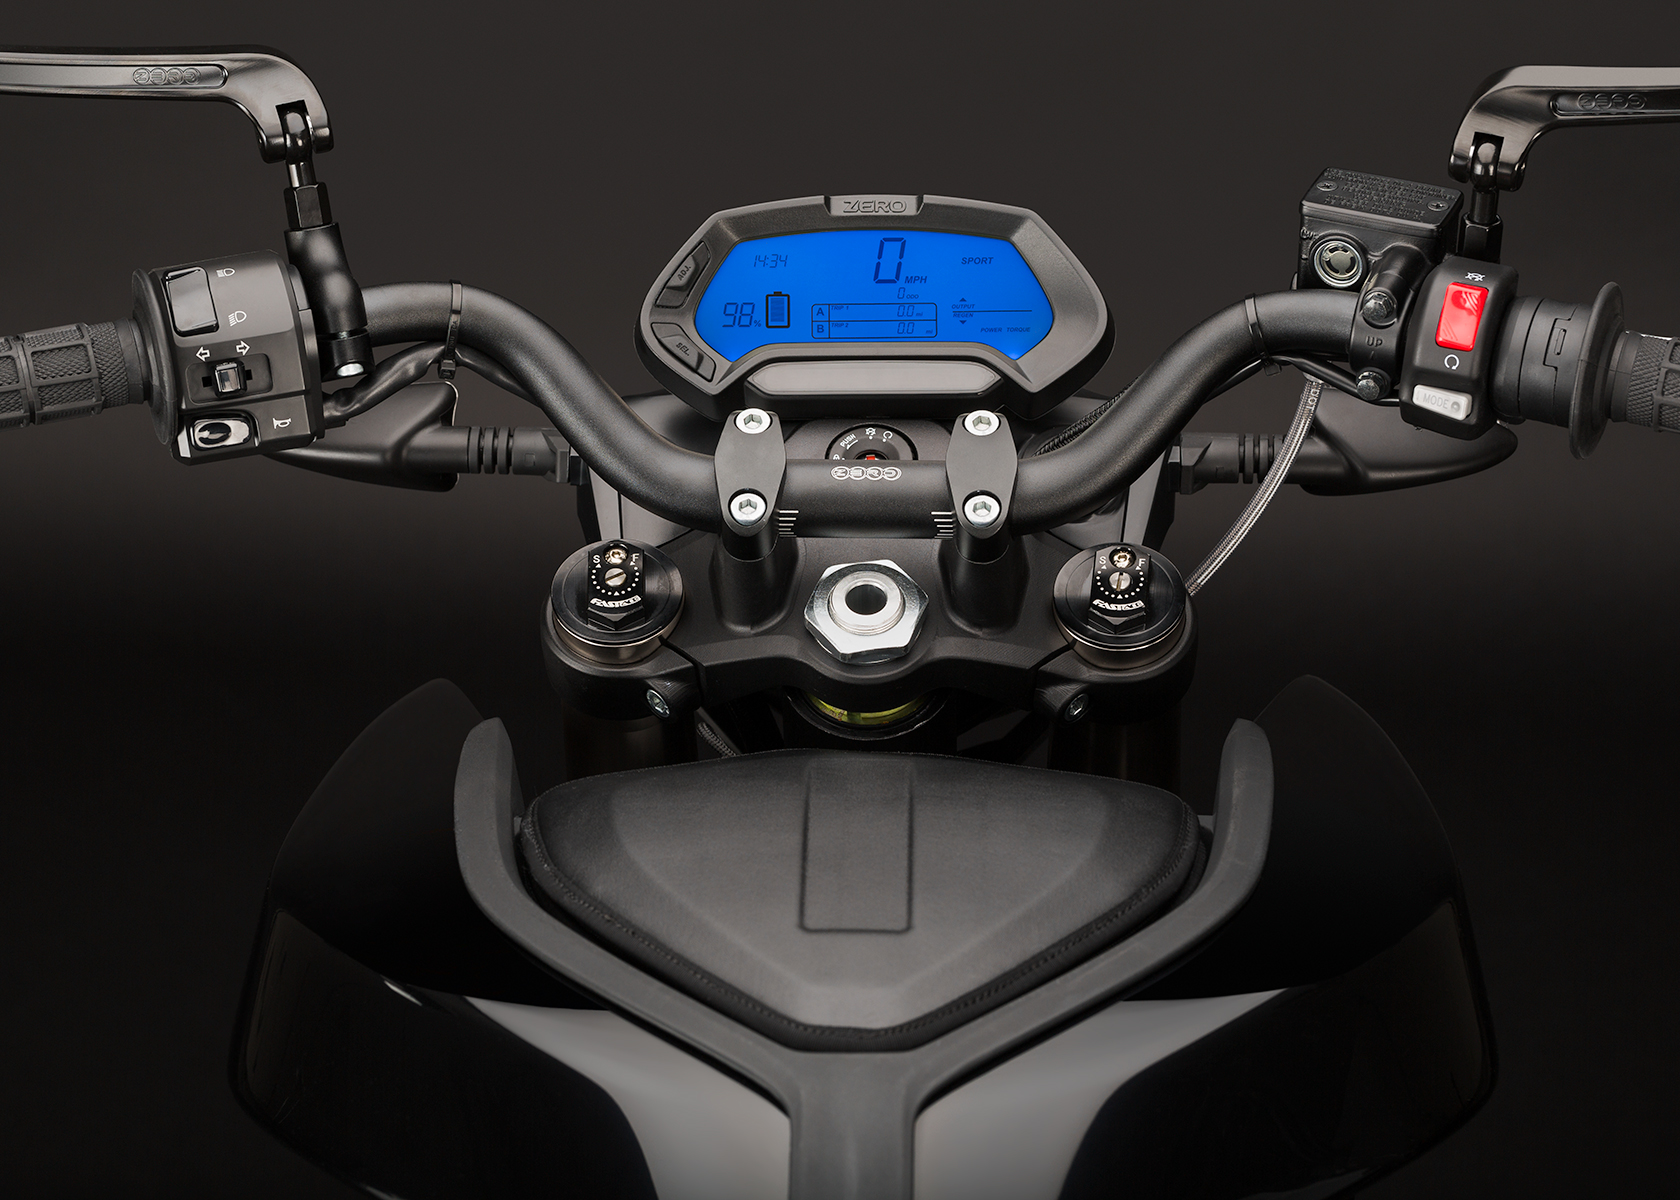 '.2014 Zero S Electric Motorcycle: Dash.'